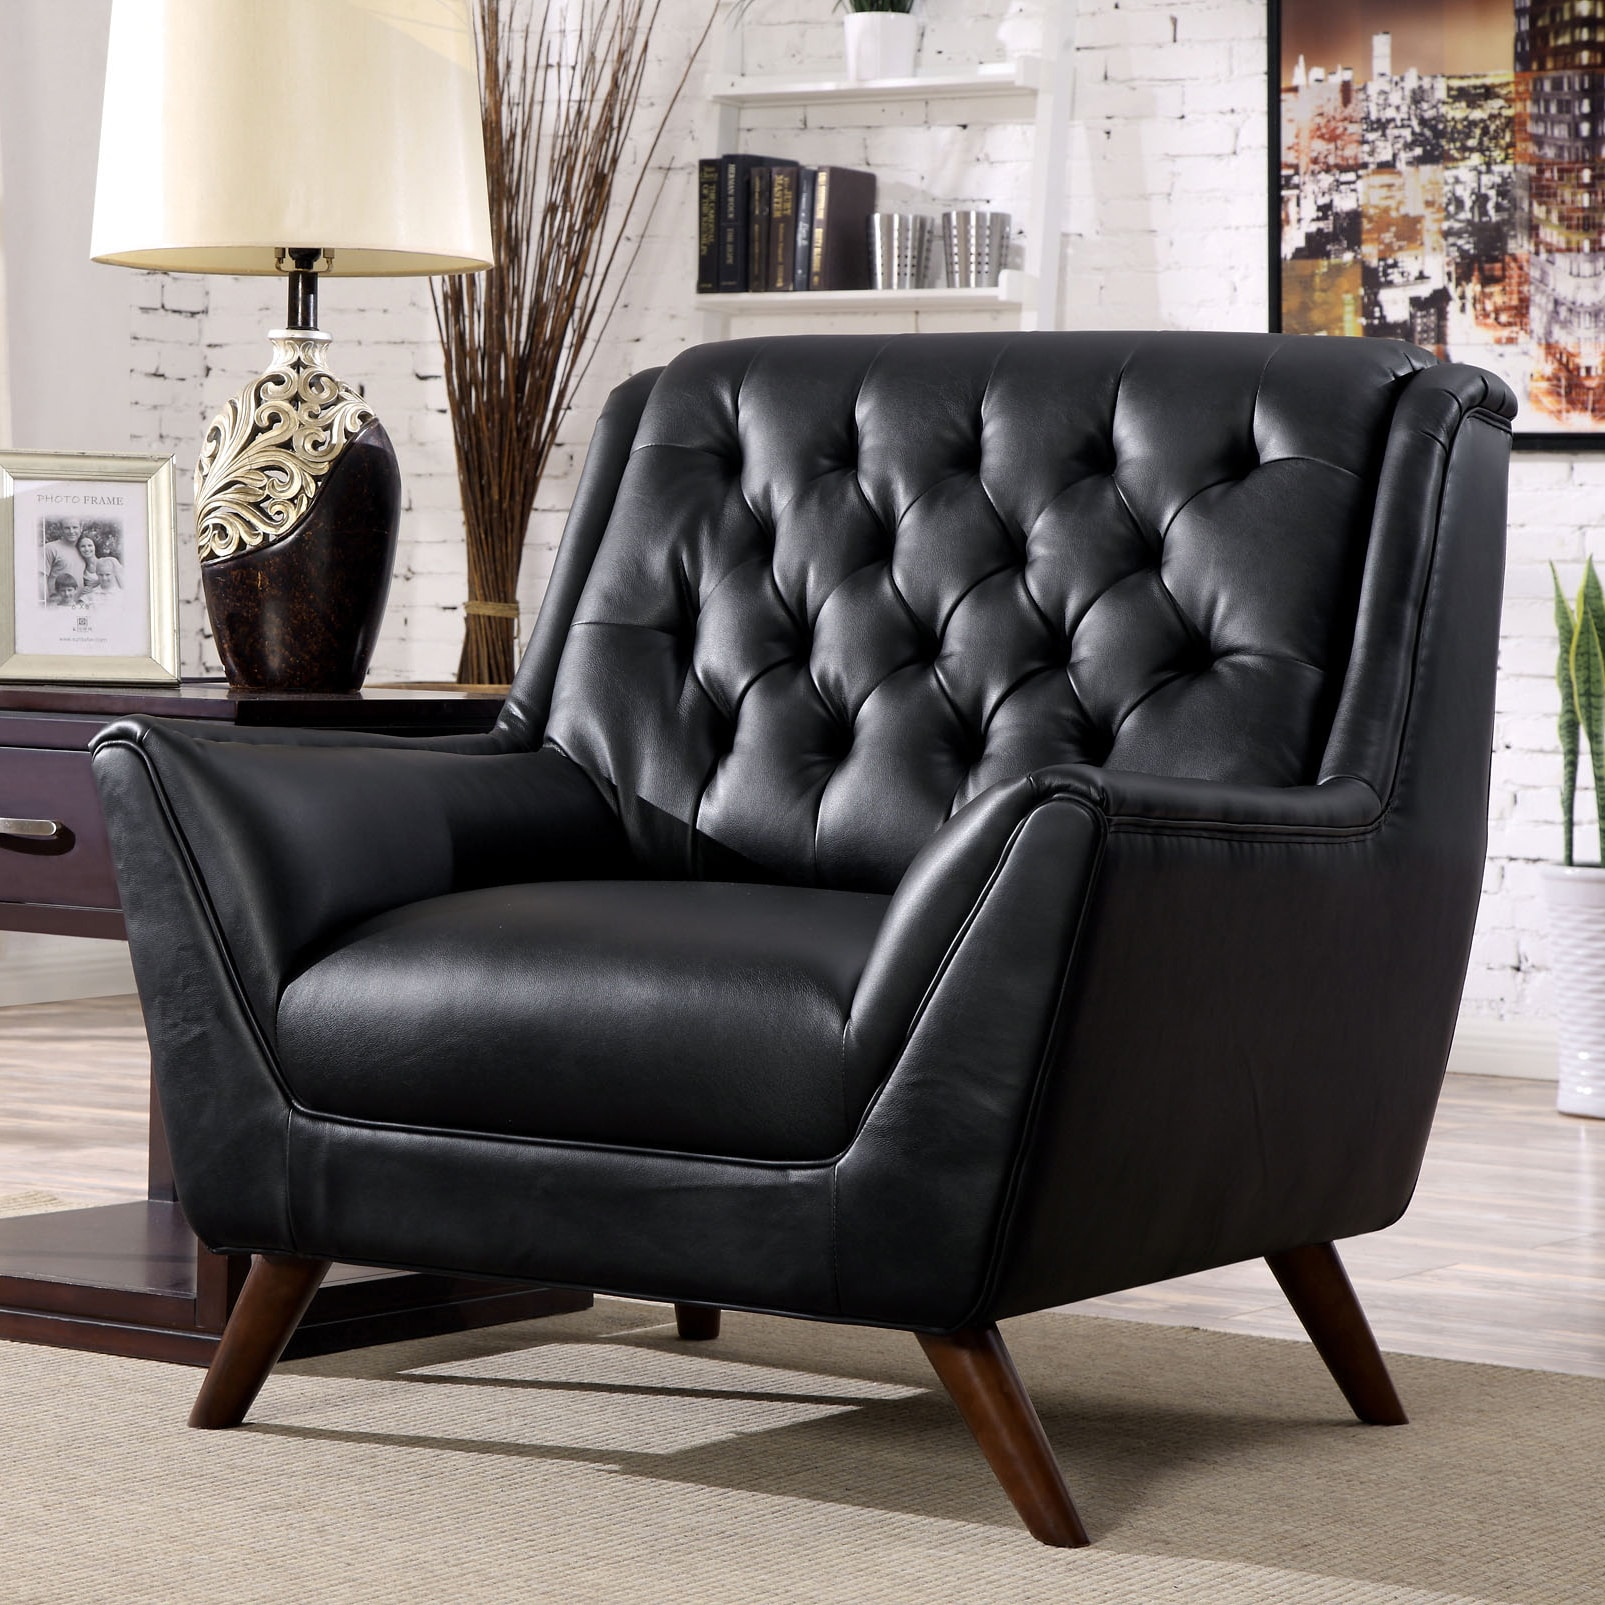 Furniture of america valentino mid century modern bonded leather club chair